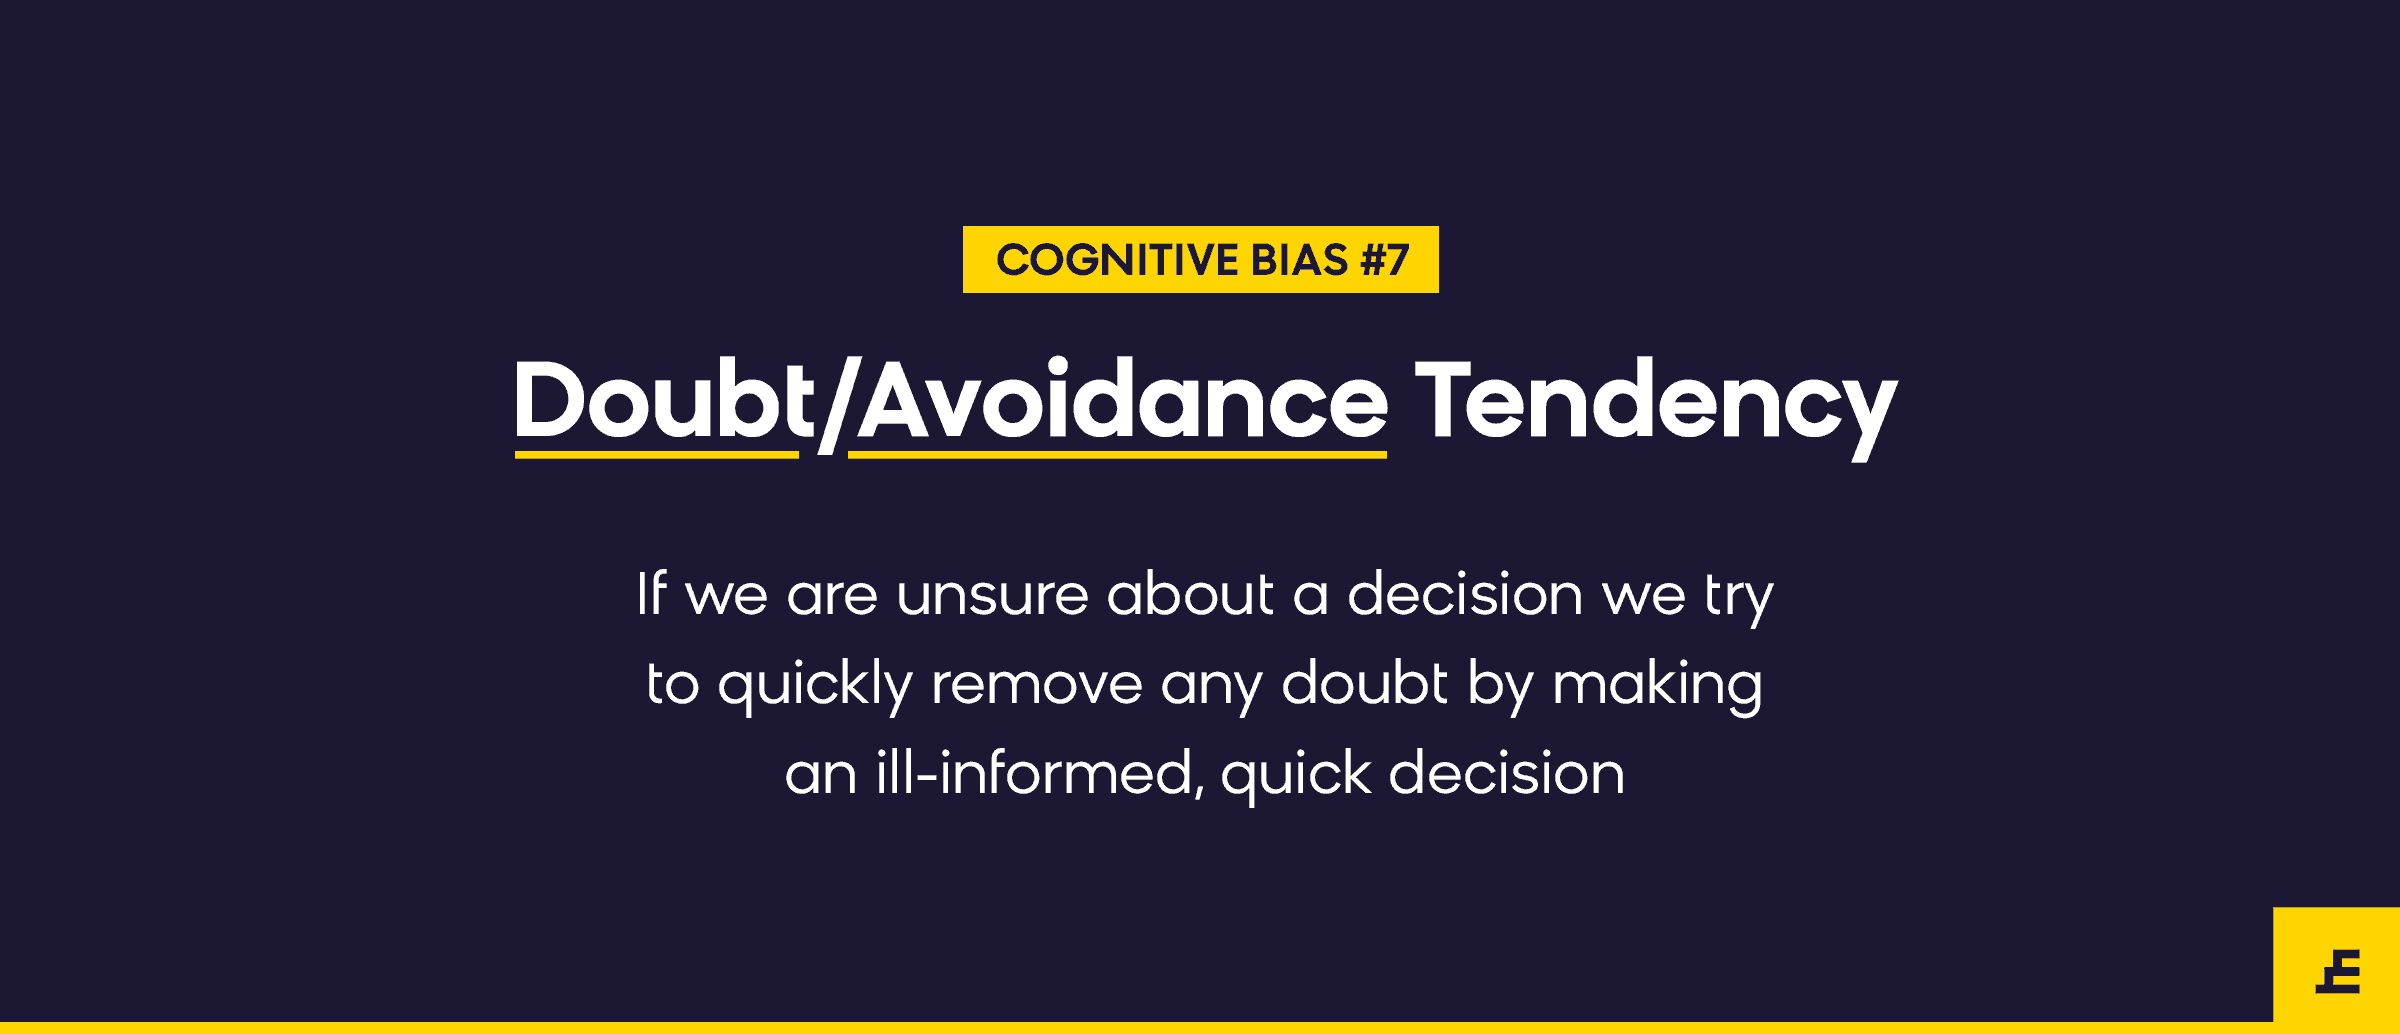 cognitive bias - doubt avoidance tendency